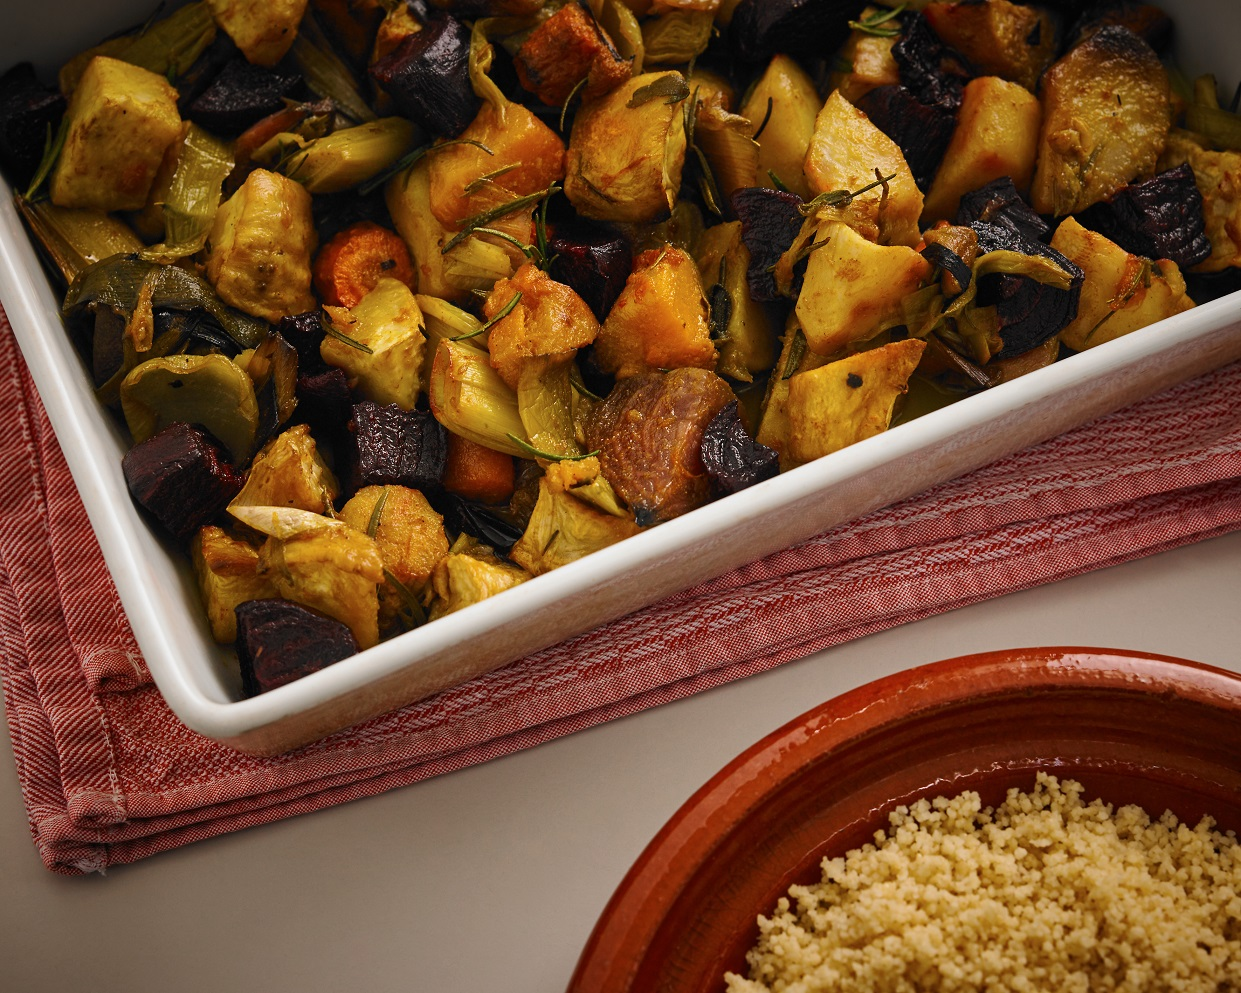 Roasted Vegetables with Couscous